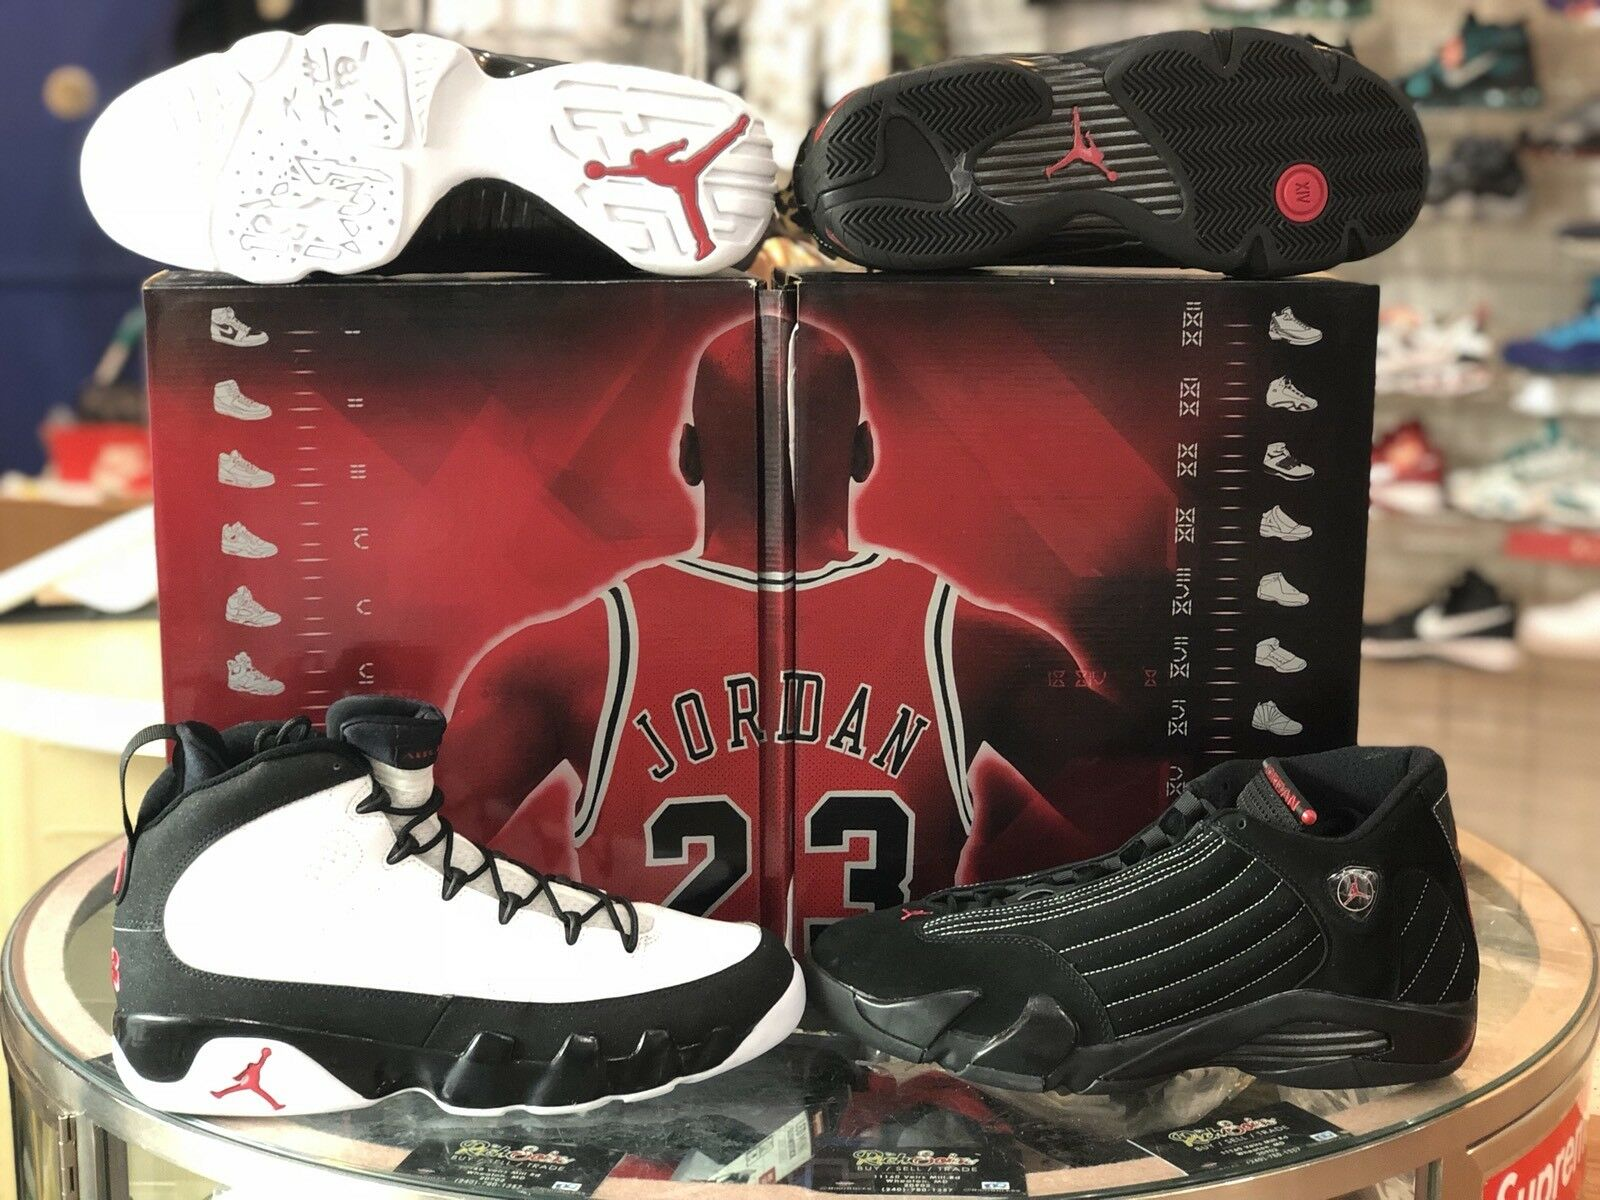 Nike Air Jordan Collezione 14 9 New DS 12 318541 992 Countdown Pack DMP Retro